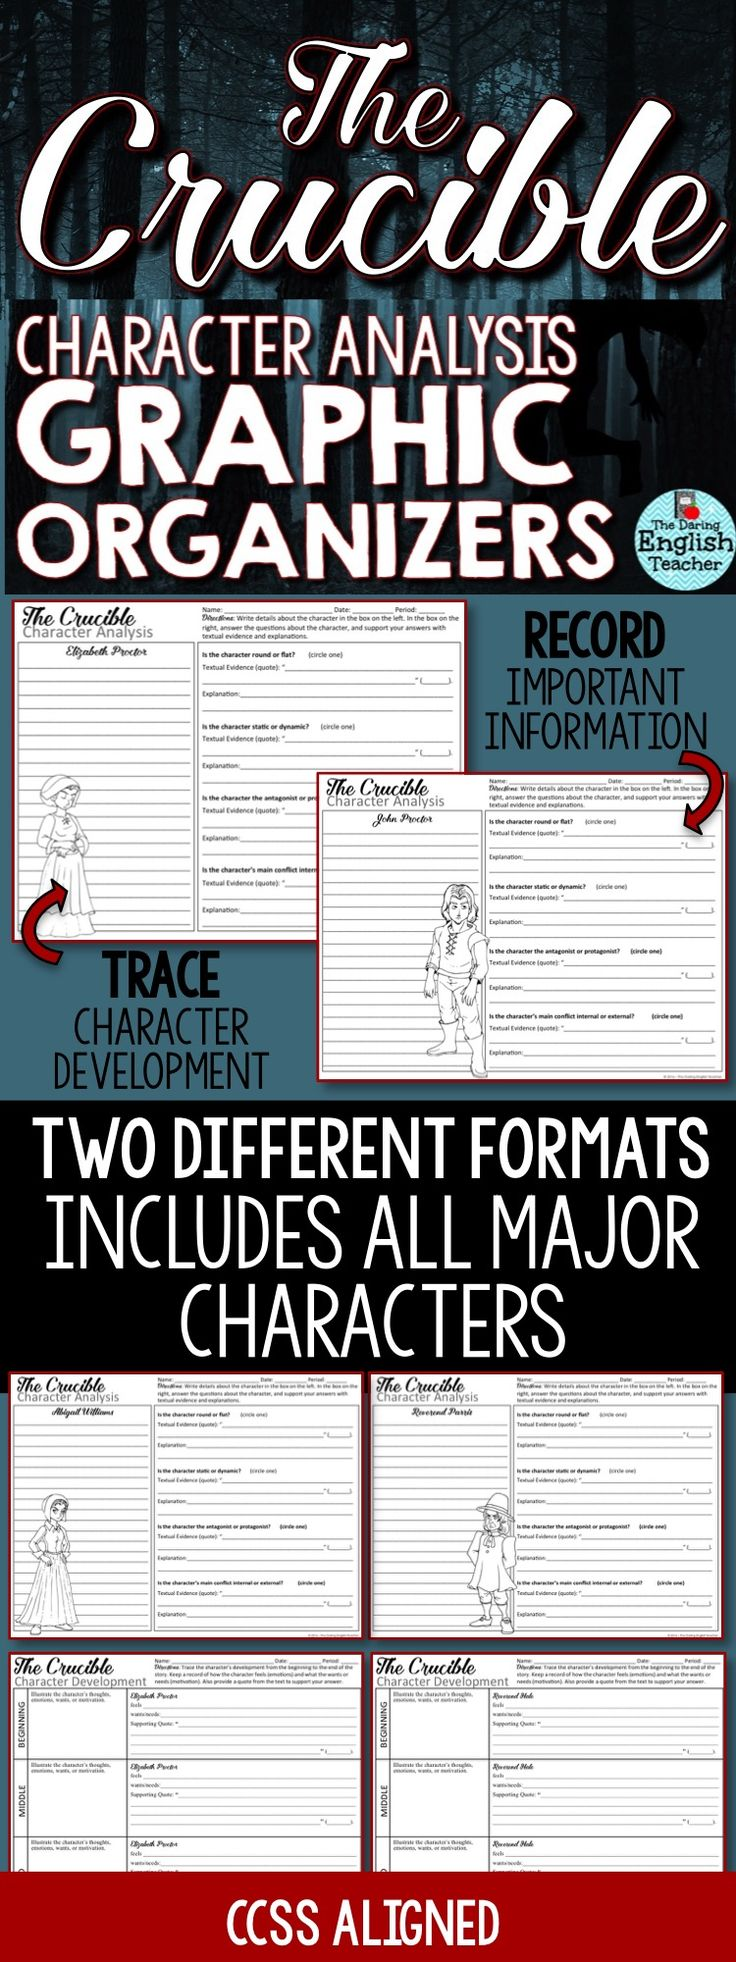 best ideas about american literature history of engage your students these common core character analysis graphic organizers for the crucible ideal